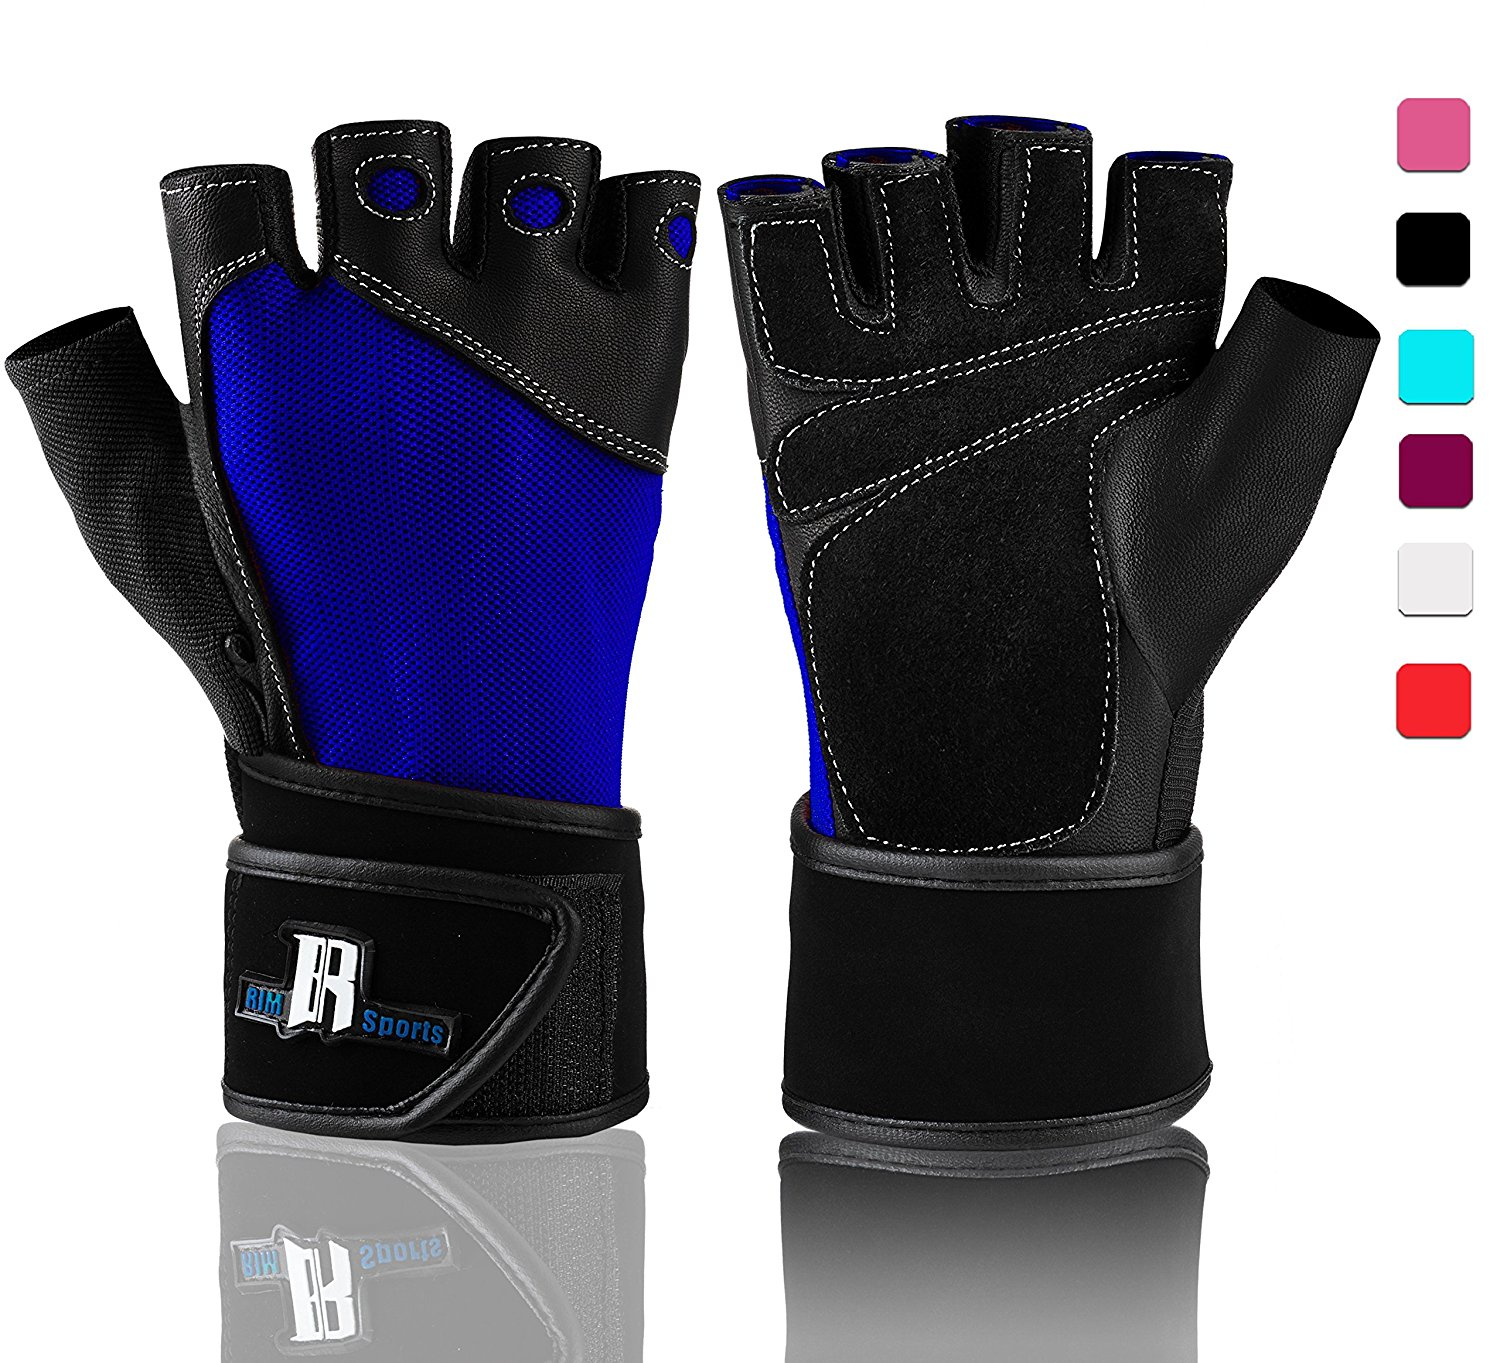 Weight Lifting Gloves With Wrist Wrap - Best Lifting Gloves - Premium Weights Lifting Gloves, Rowing Gloves, Biking Gloves, Training Gloves, Crossfit Gloves & Grip Gloves - Black, X-Small